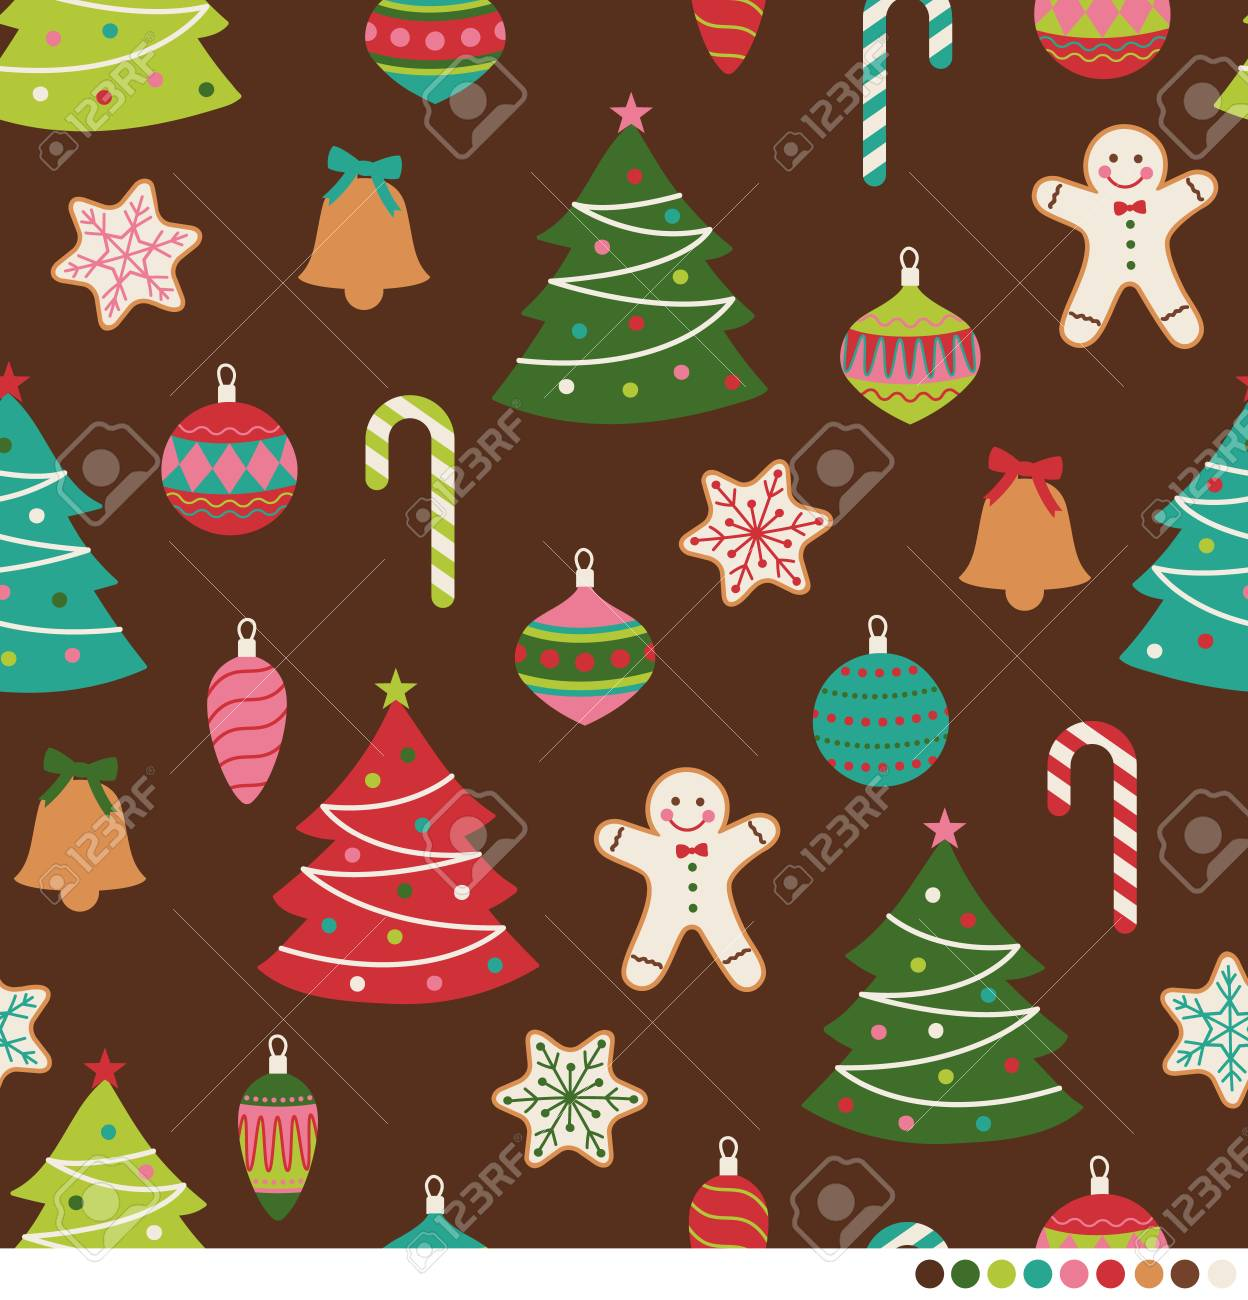 Christmas Backgrounds Cute.Cute Christmas Ornaments Seamless Pattern Background